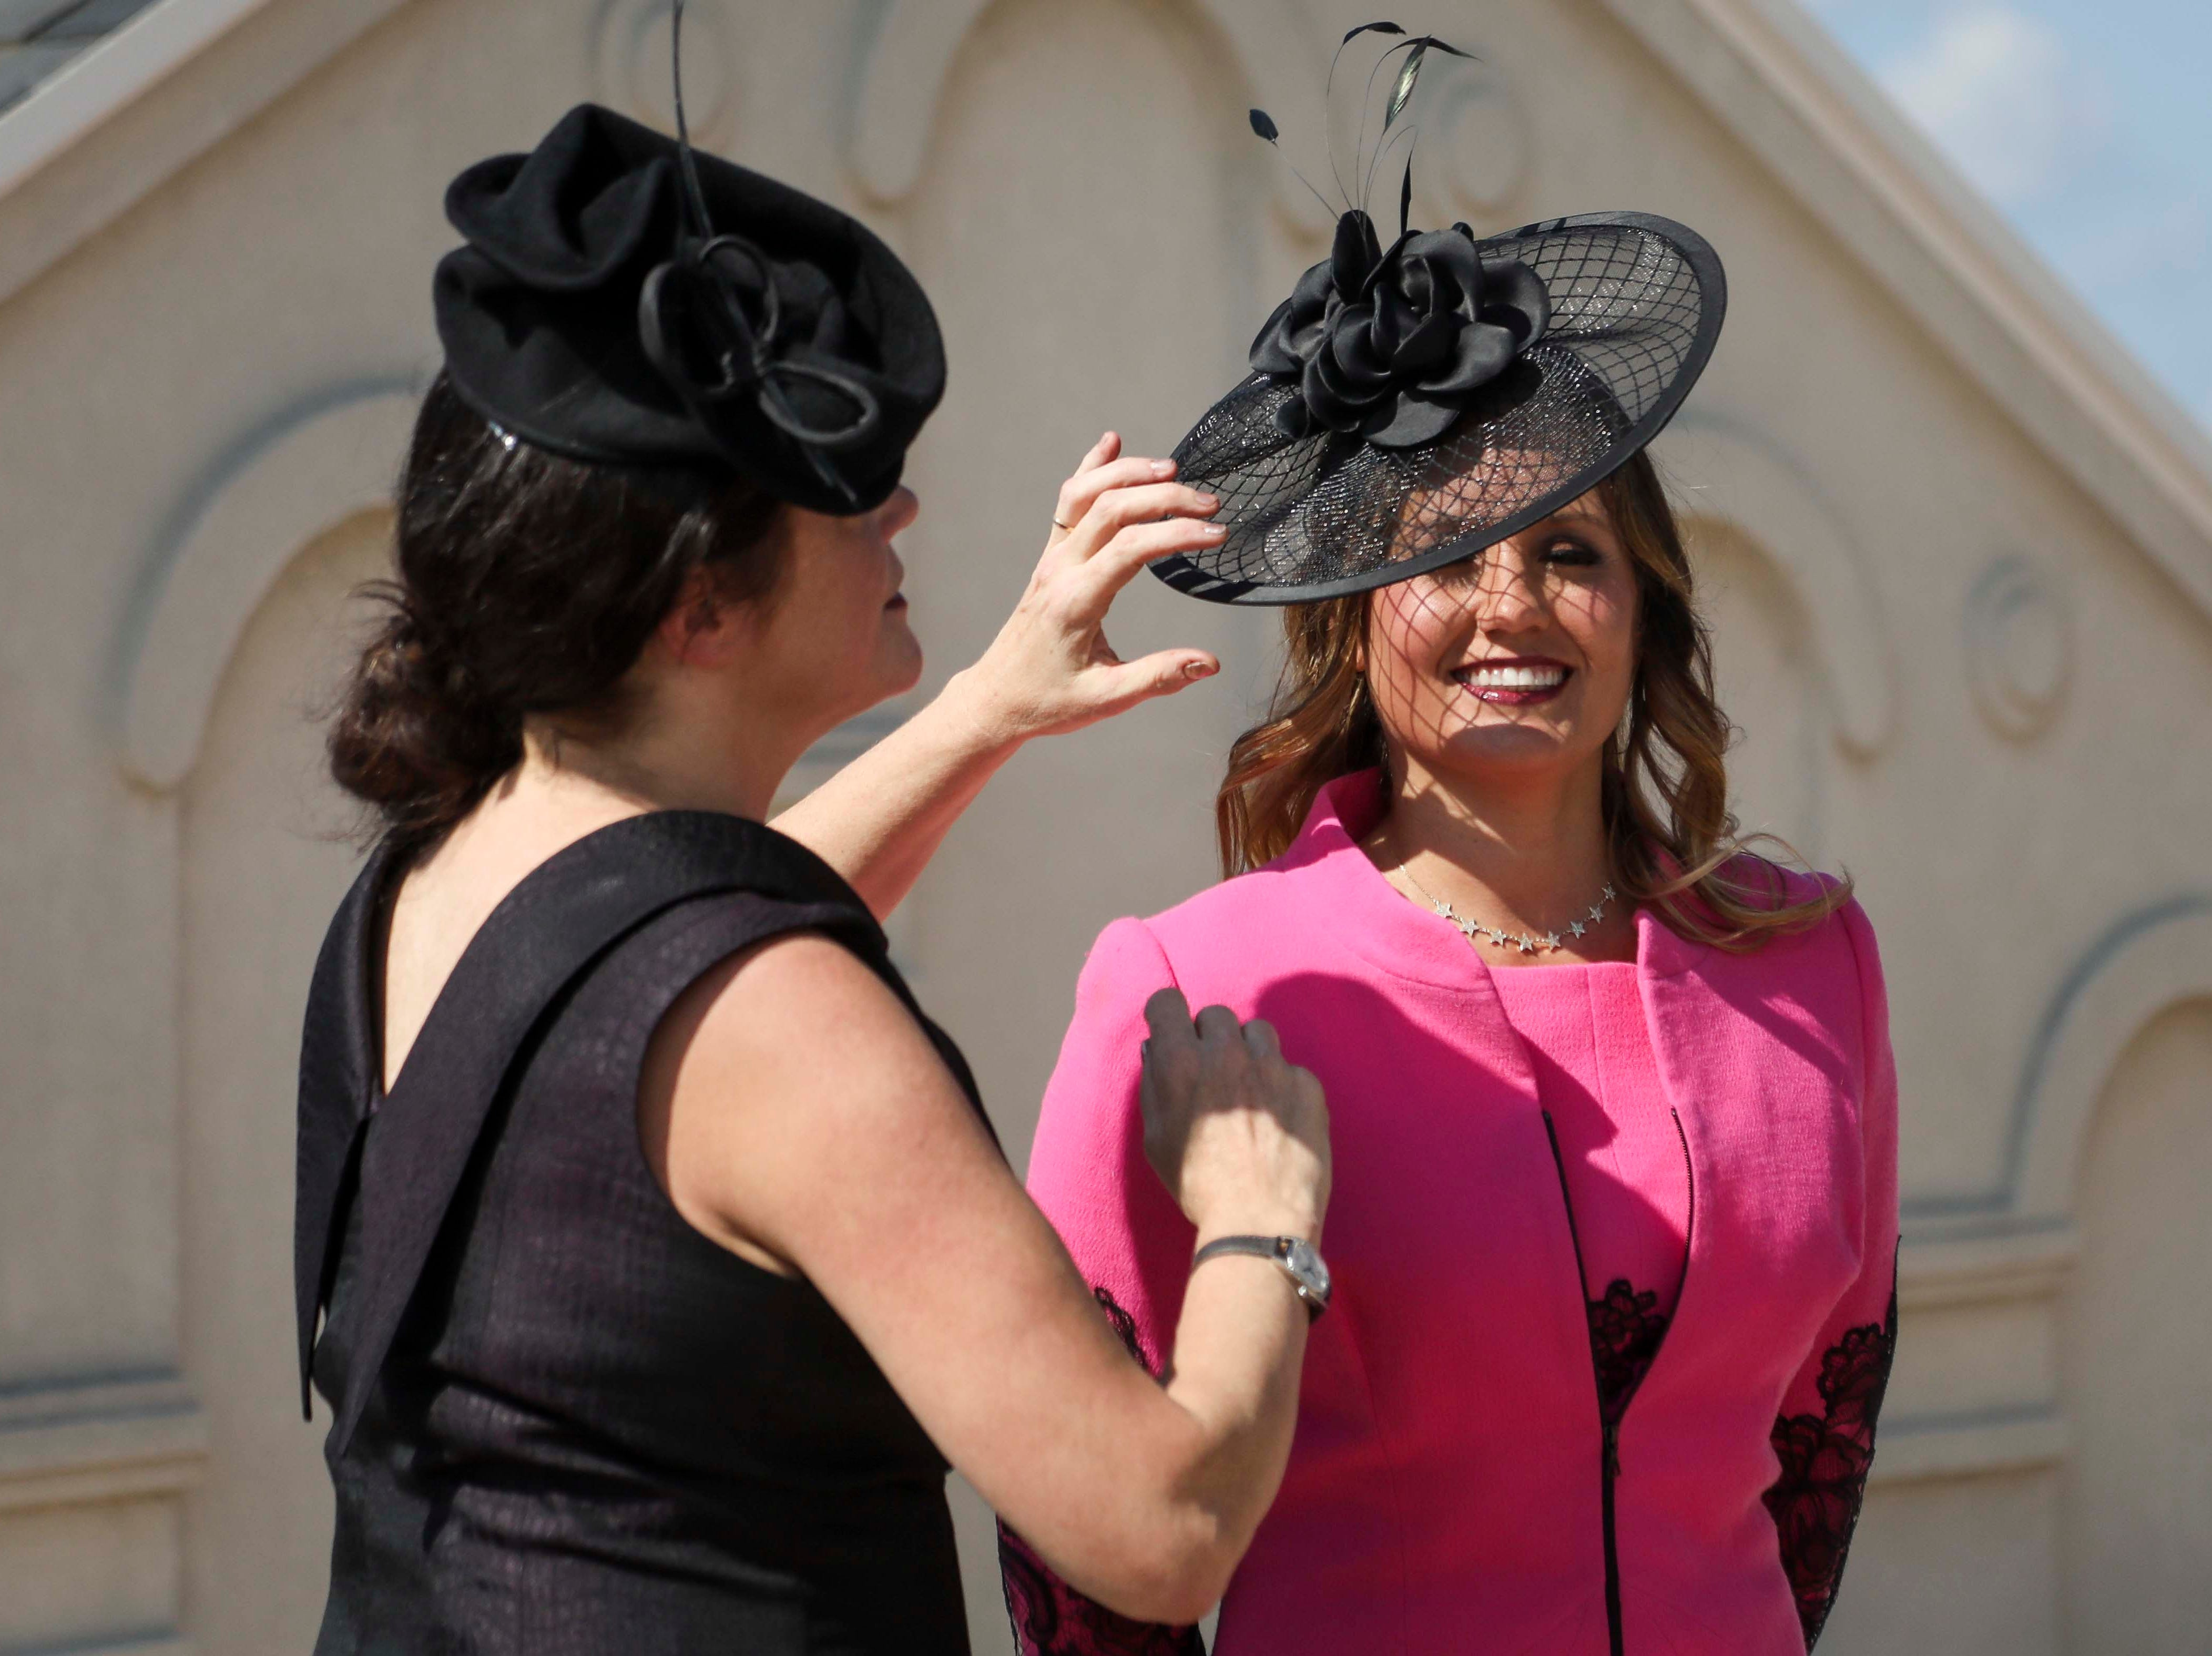 Christine Moore, left, track fashion expert and owner of Cam Hats, places one of her handmade hats on Candice Isa, right, during an interview with the Courier Journal ahead of the Breeders Cup (November 3) at Churchill Downs on Wednesday, October 3, 2018.